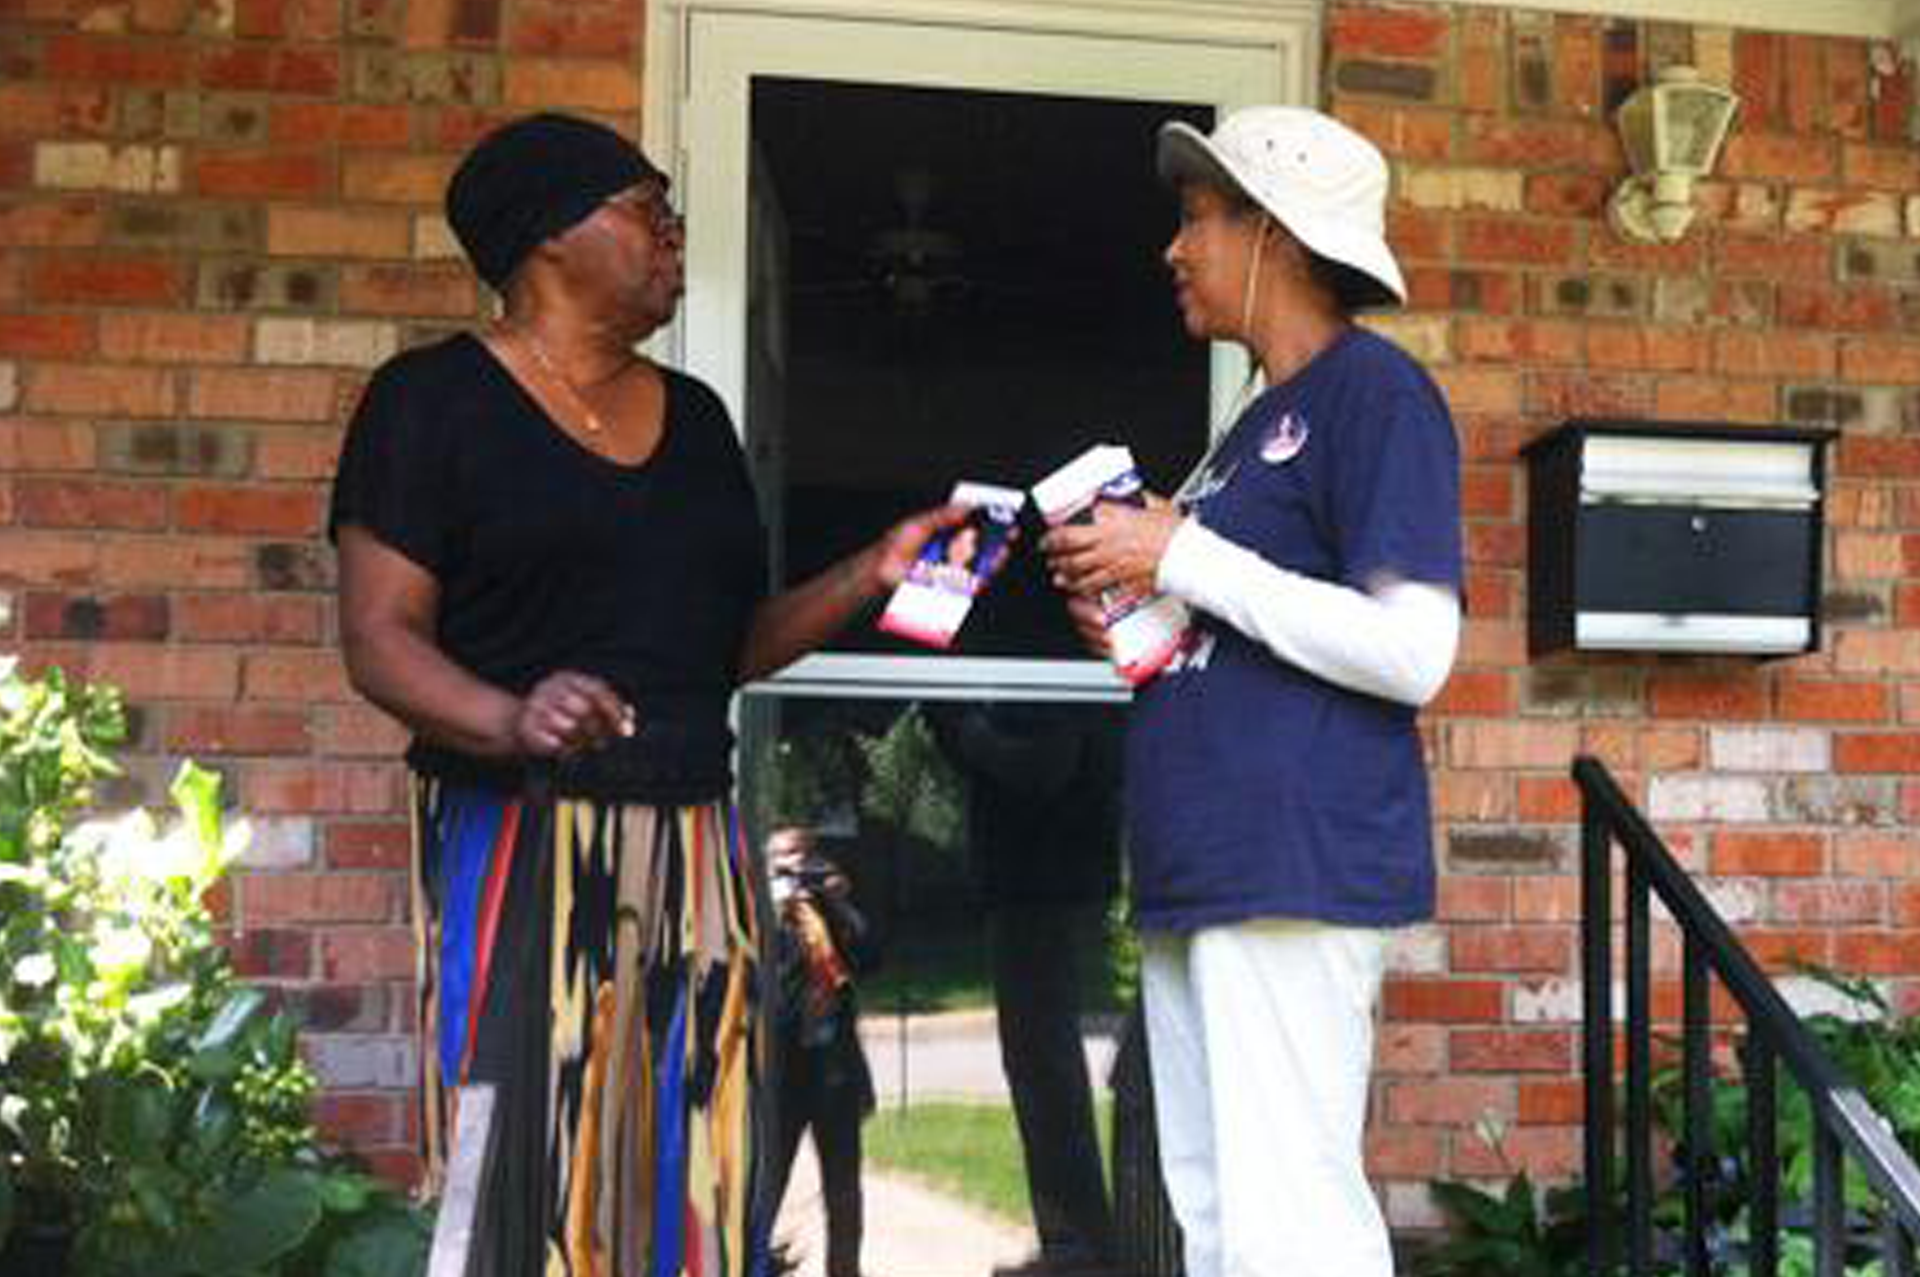 Two people of color talking at a door porch